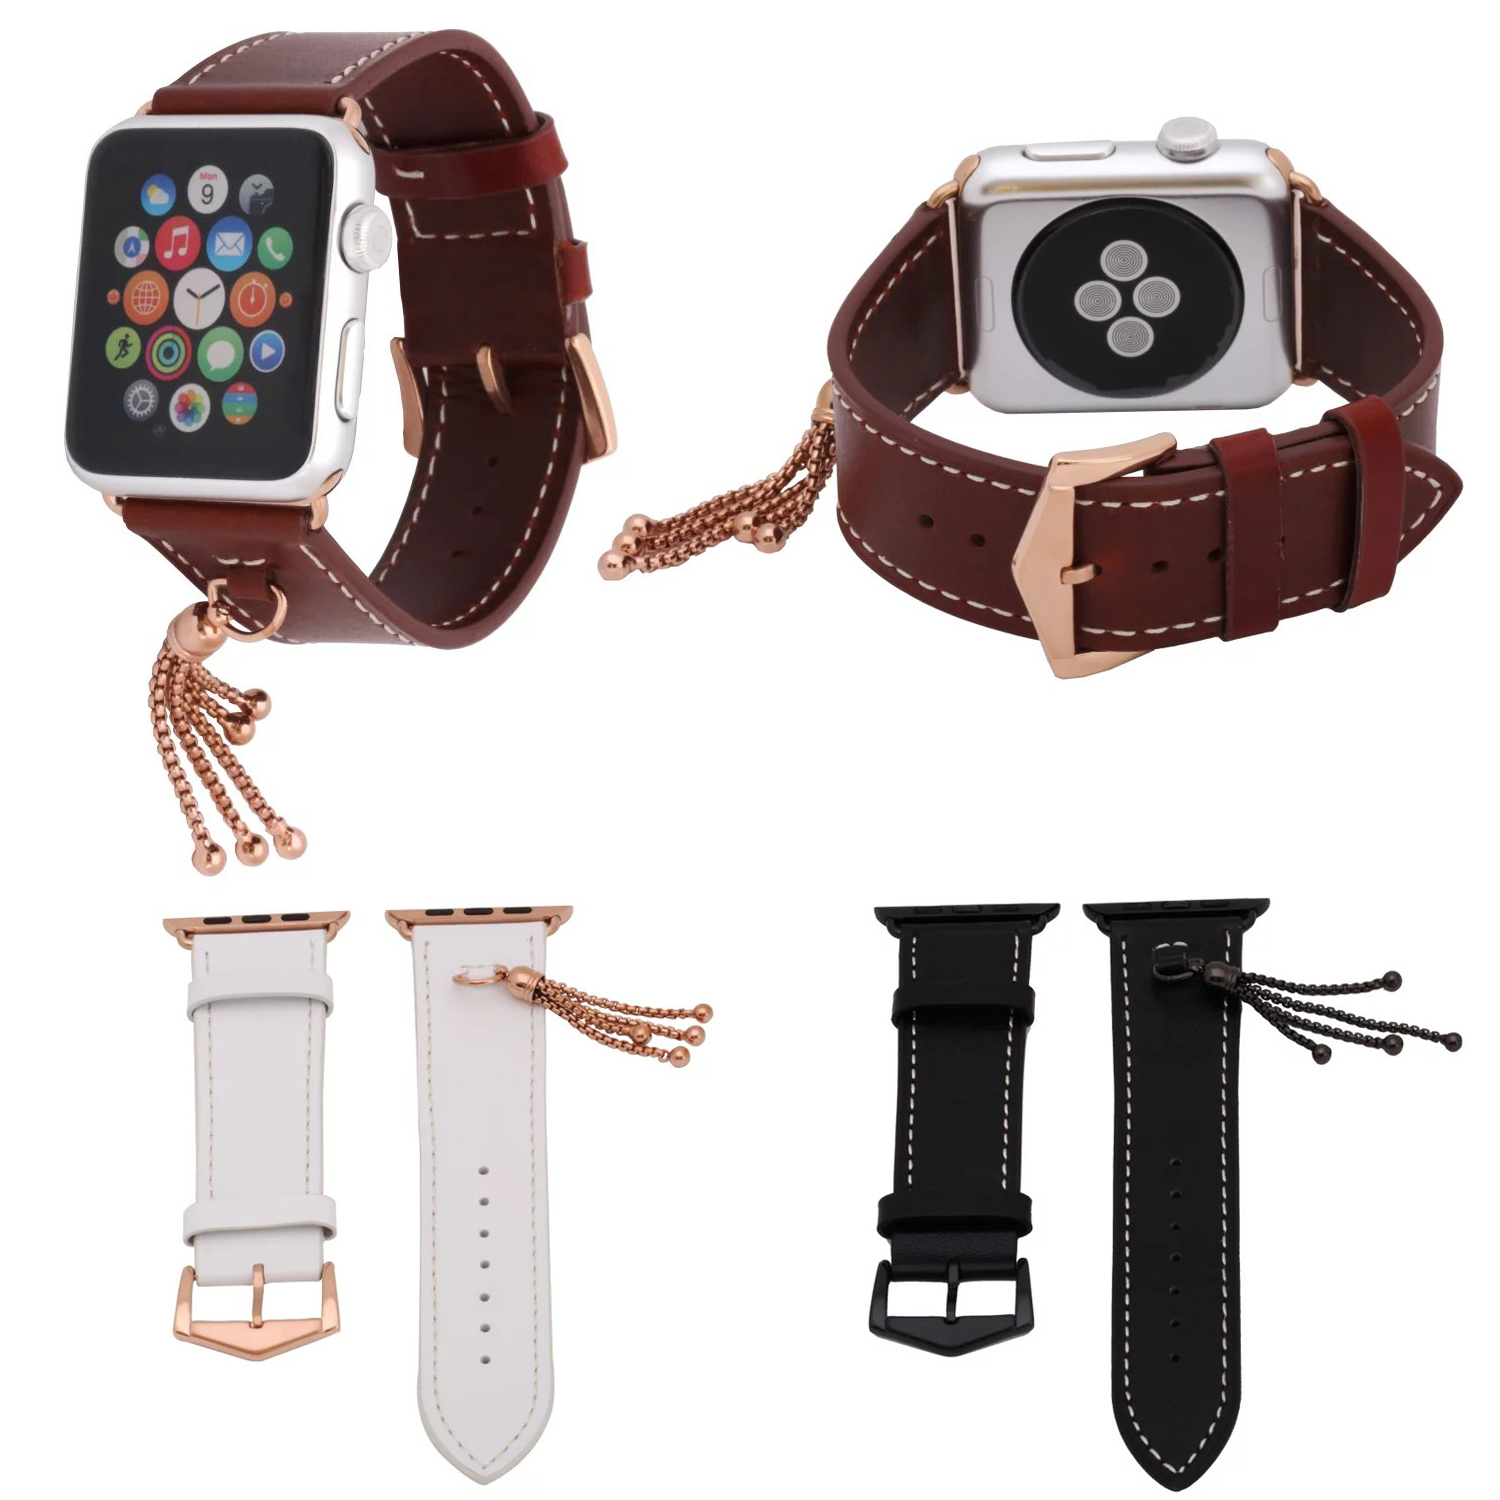 Tassels Genuine Leather Band For iWatch 1st 2nd Cowhide Strap for Apple Watch Series 2 Watchband with Small Ornaments 42mm 38mm 750634 501 750634 001 motherboard for hp 15 g series laptop main board zs051 la a996p ddr3 100% tested